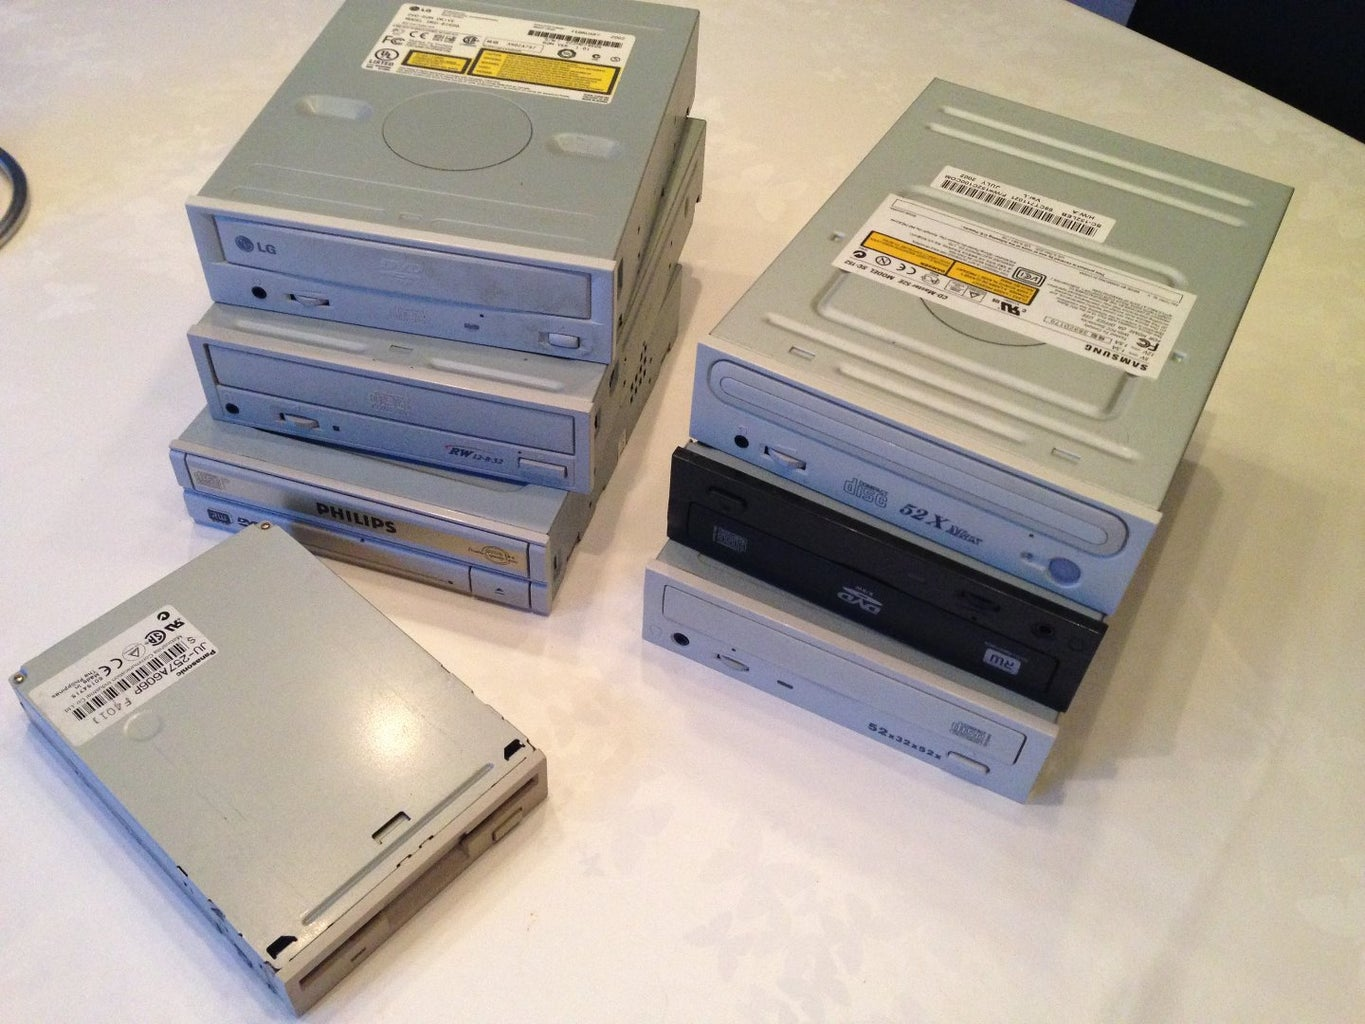 Decommissioning and Salvaging Part From Our CD/DVD Drives